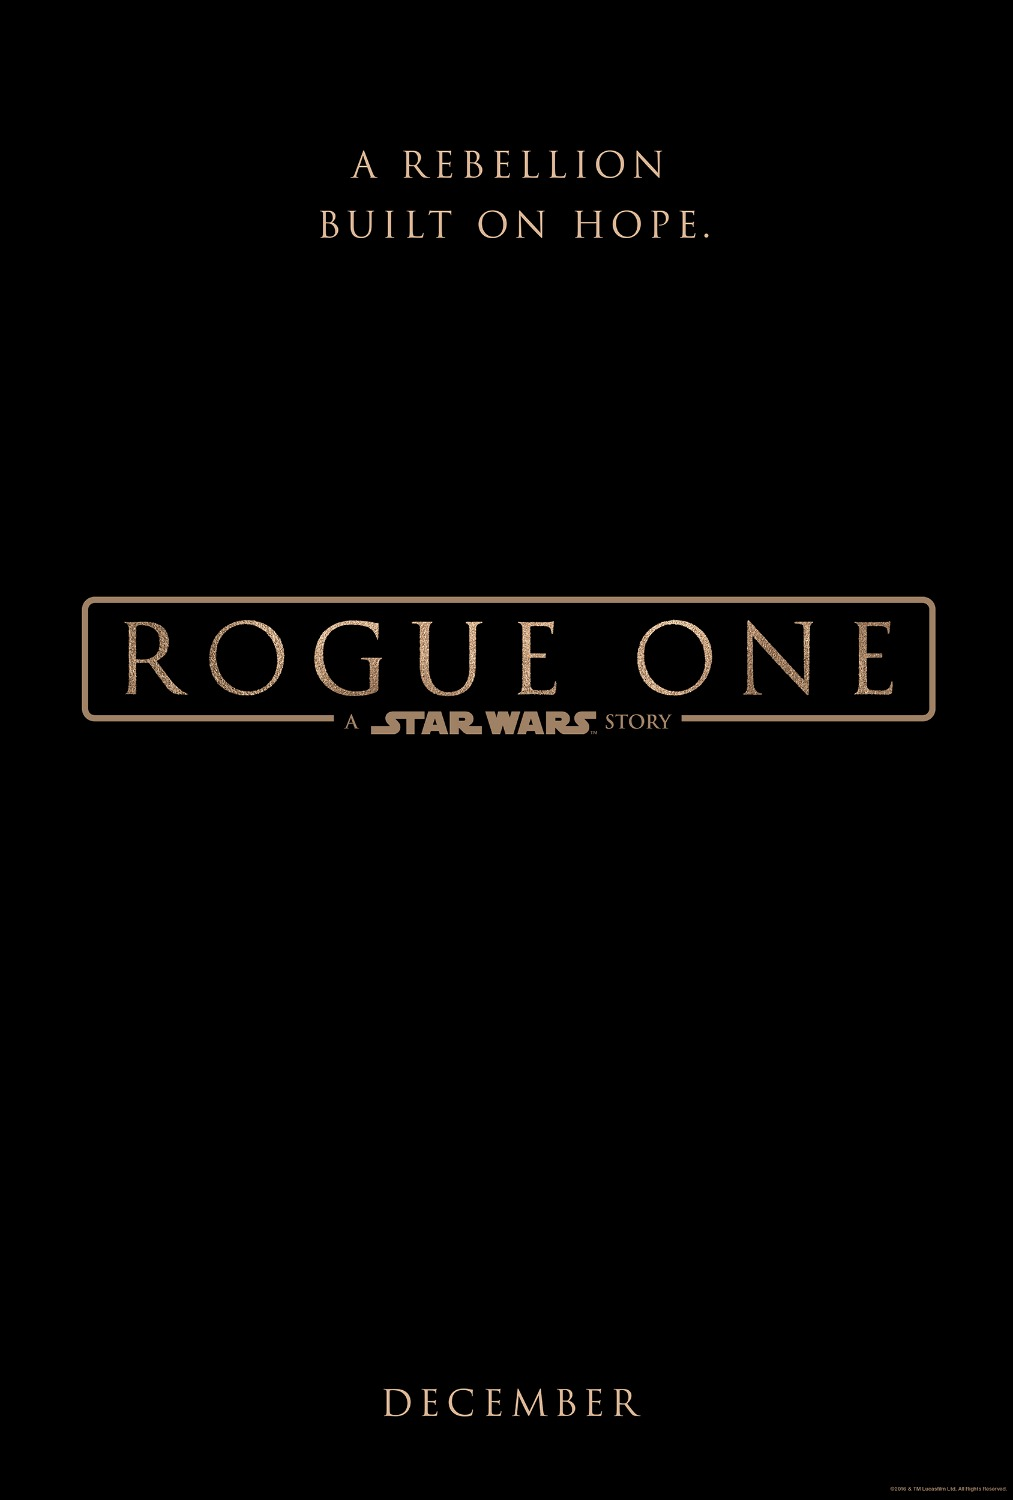 Rogue One A Star Wars Story Teaser Trailer #RogueOne